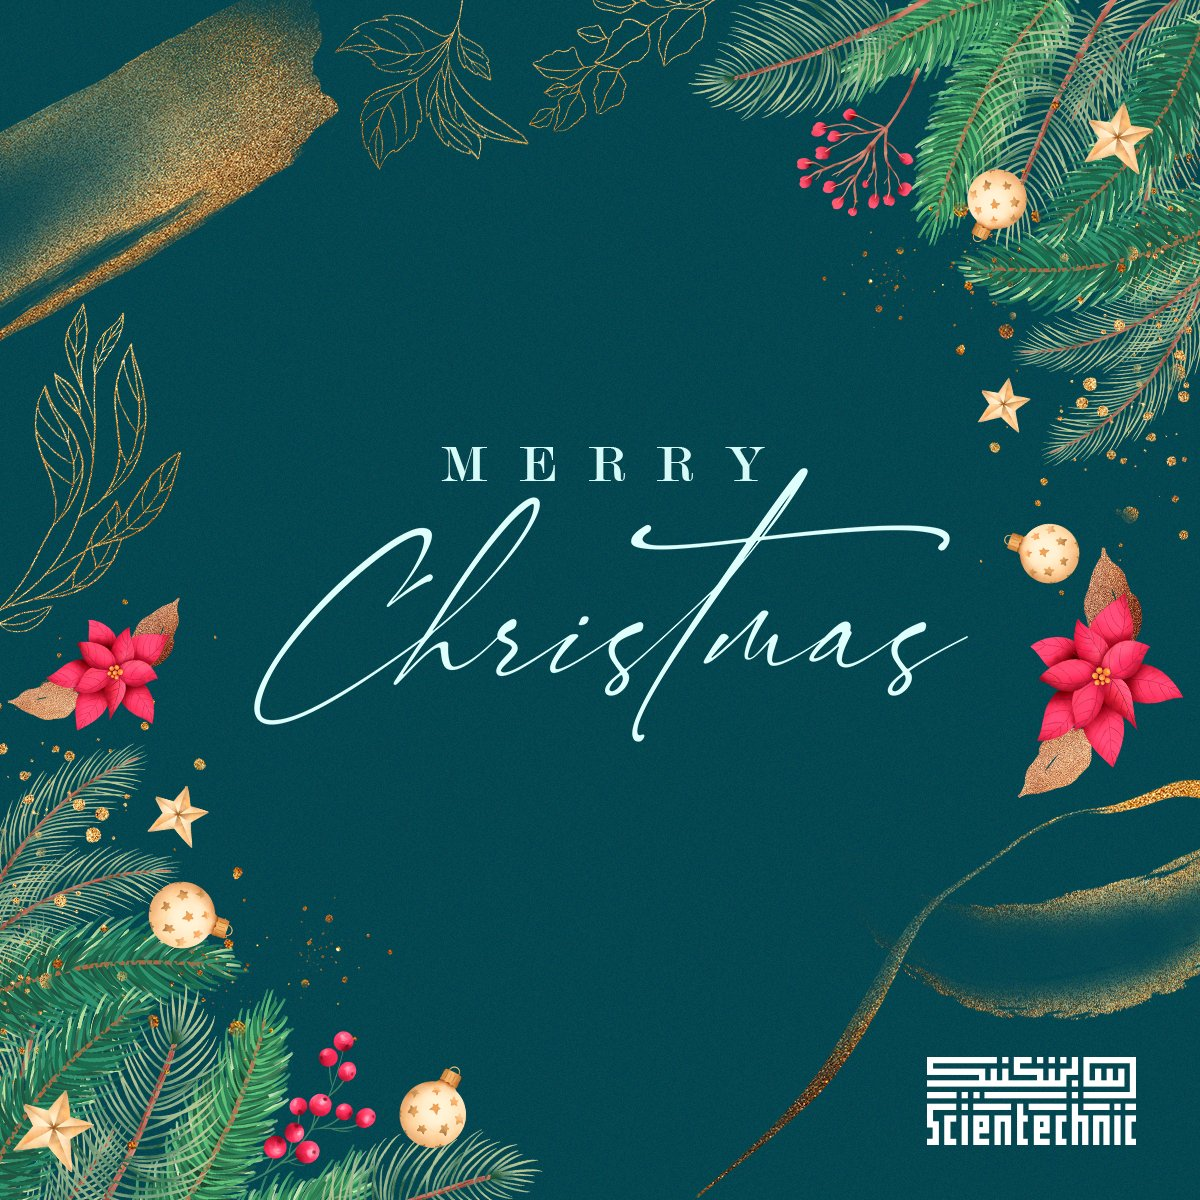 Merry Christmas! Stay safe and healthy this festive season. #MerryChristmas2020 #StaySafe #happyholidays2020 https://t.co/GkxERVEgci